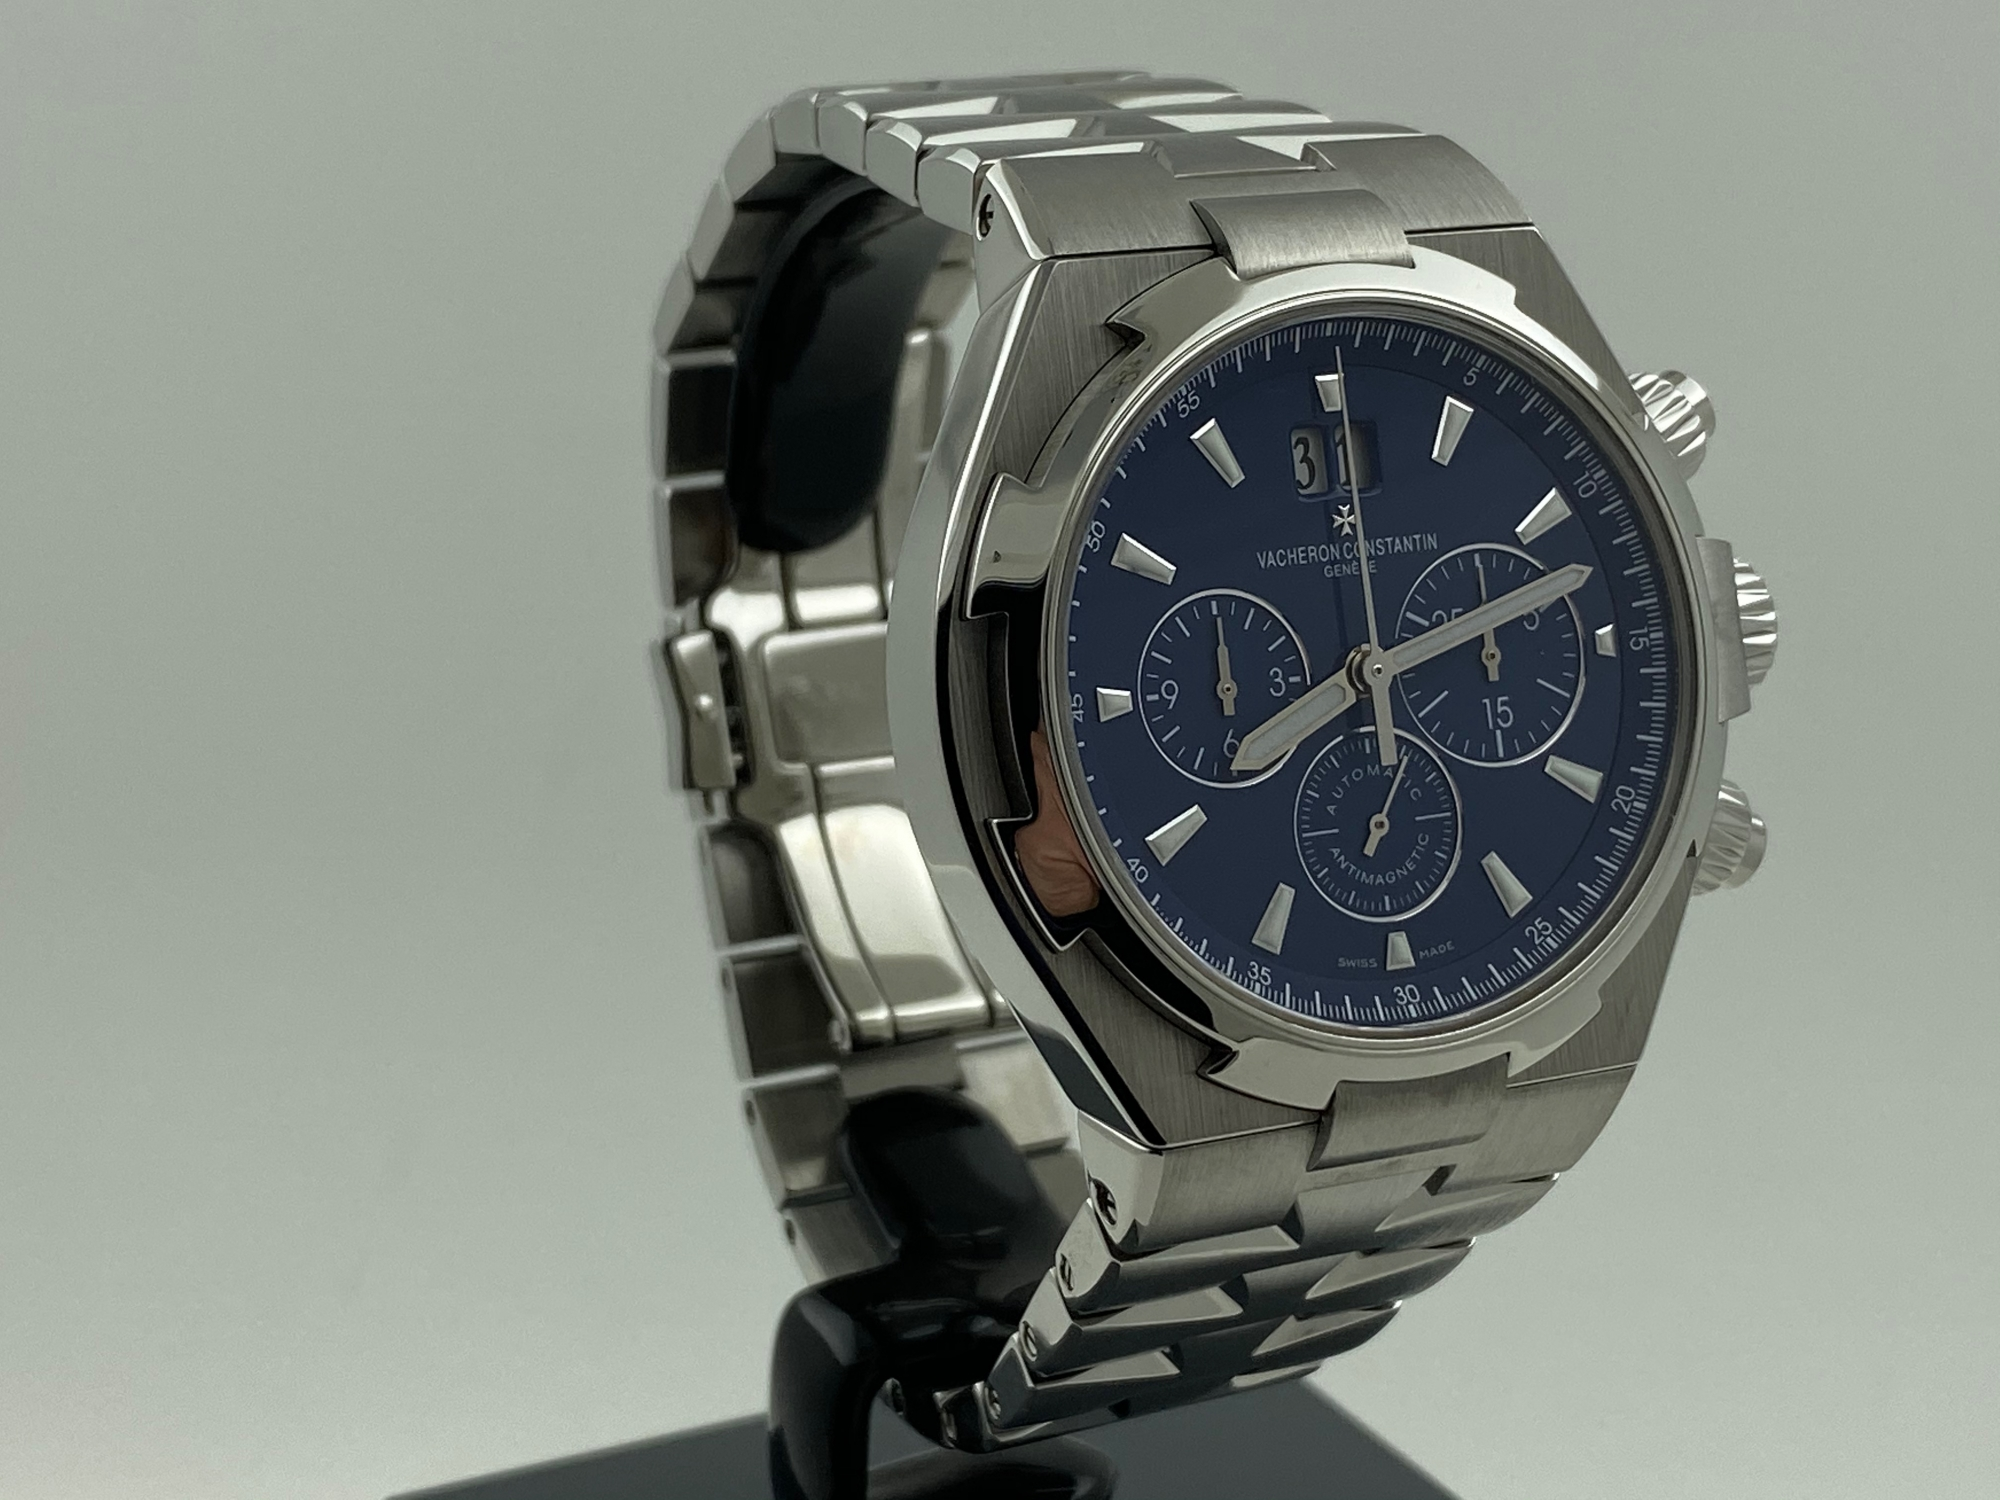 Vacheron Constantin Overseas Chronograph Blue Dial Automatic 42MM Full Set Like New + Croco Strap and Clasp 49150 0